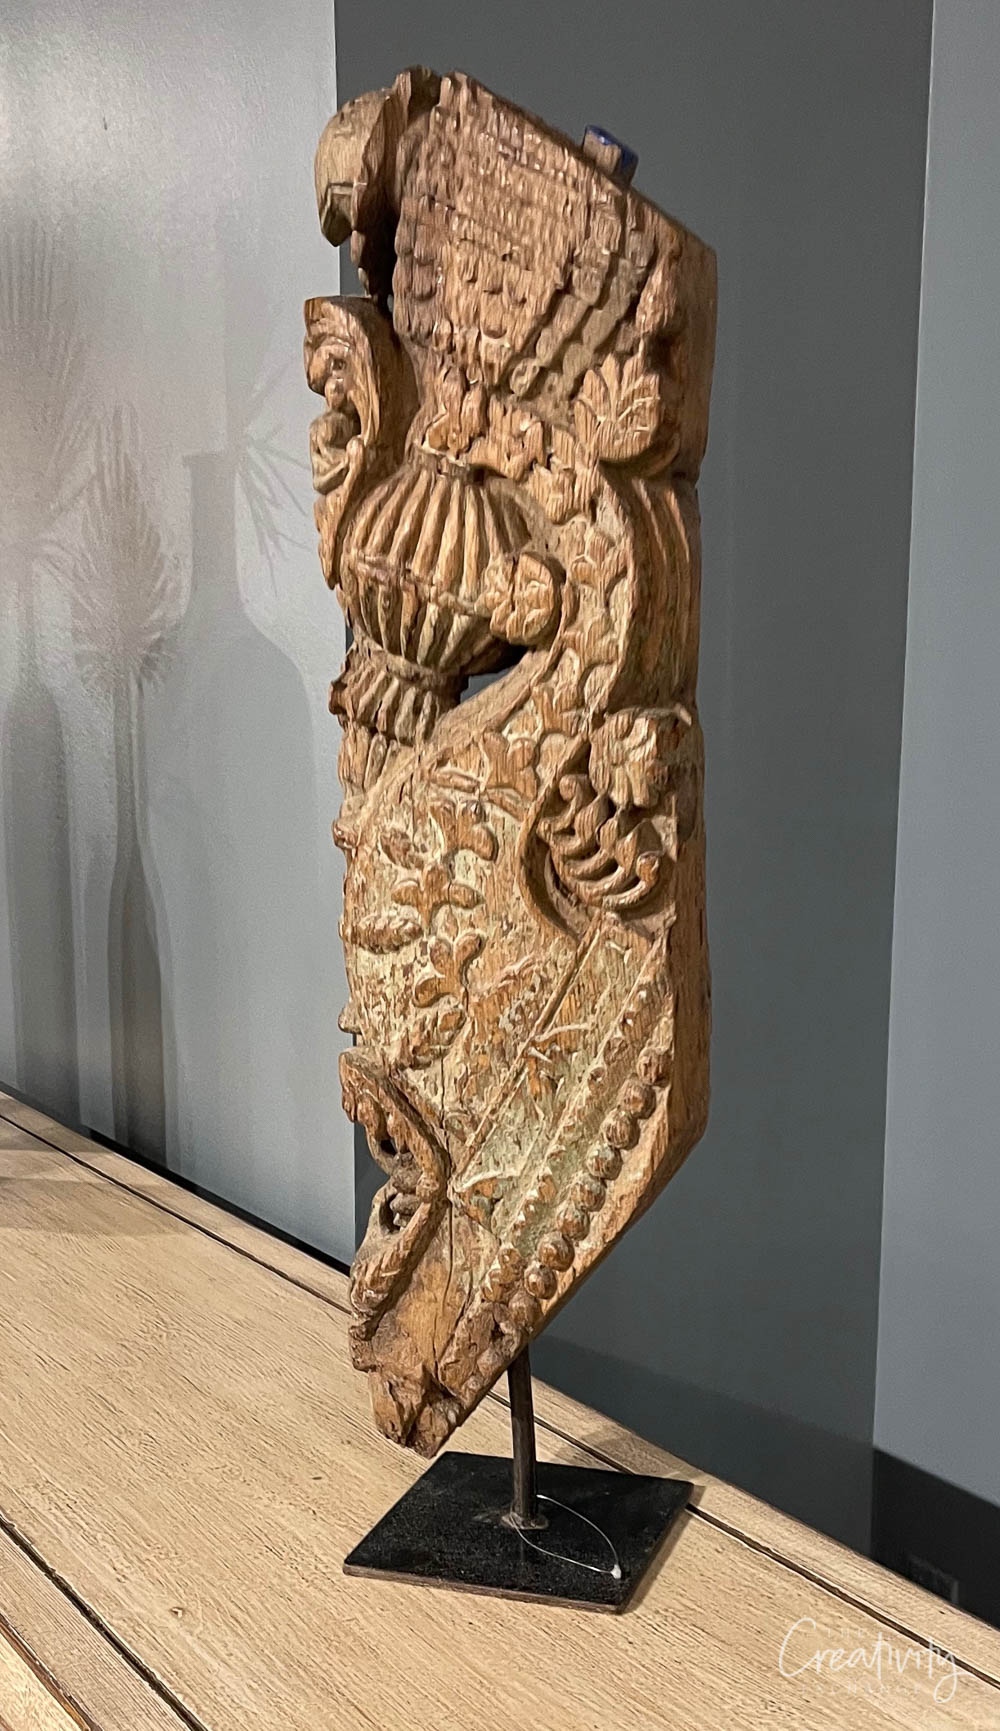 Carved wood piece on a stand